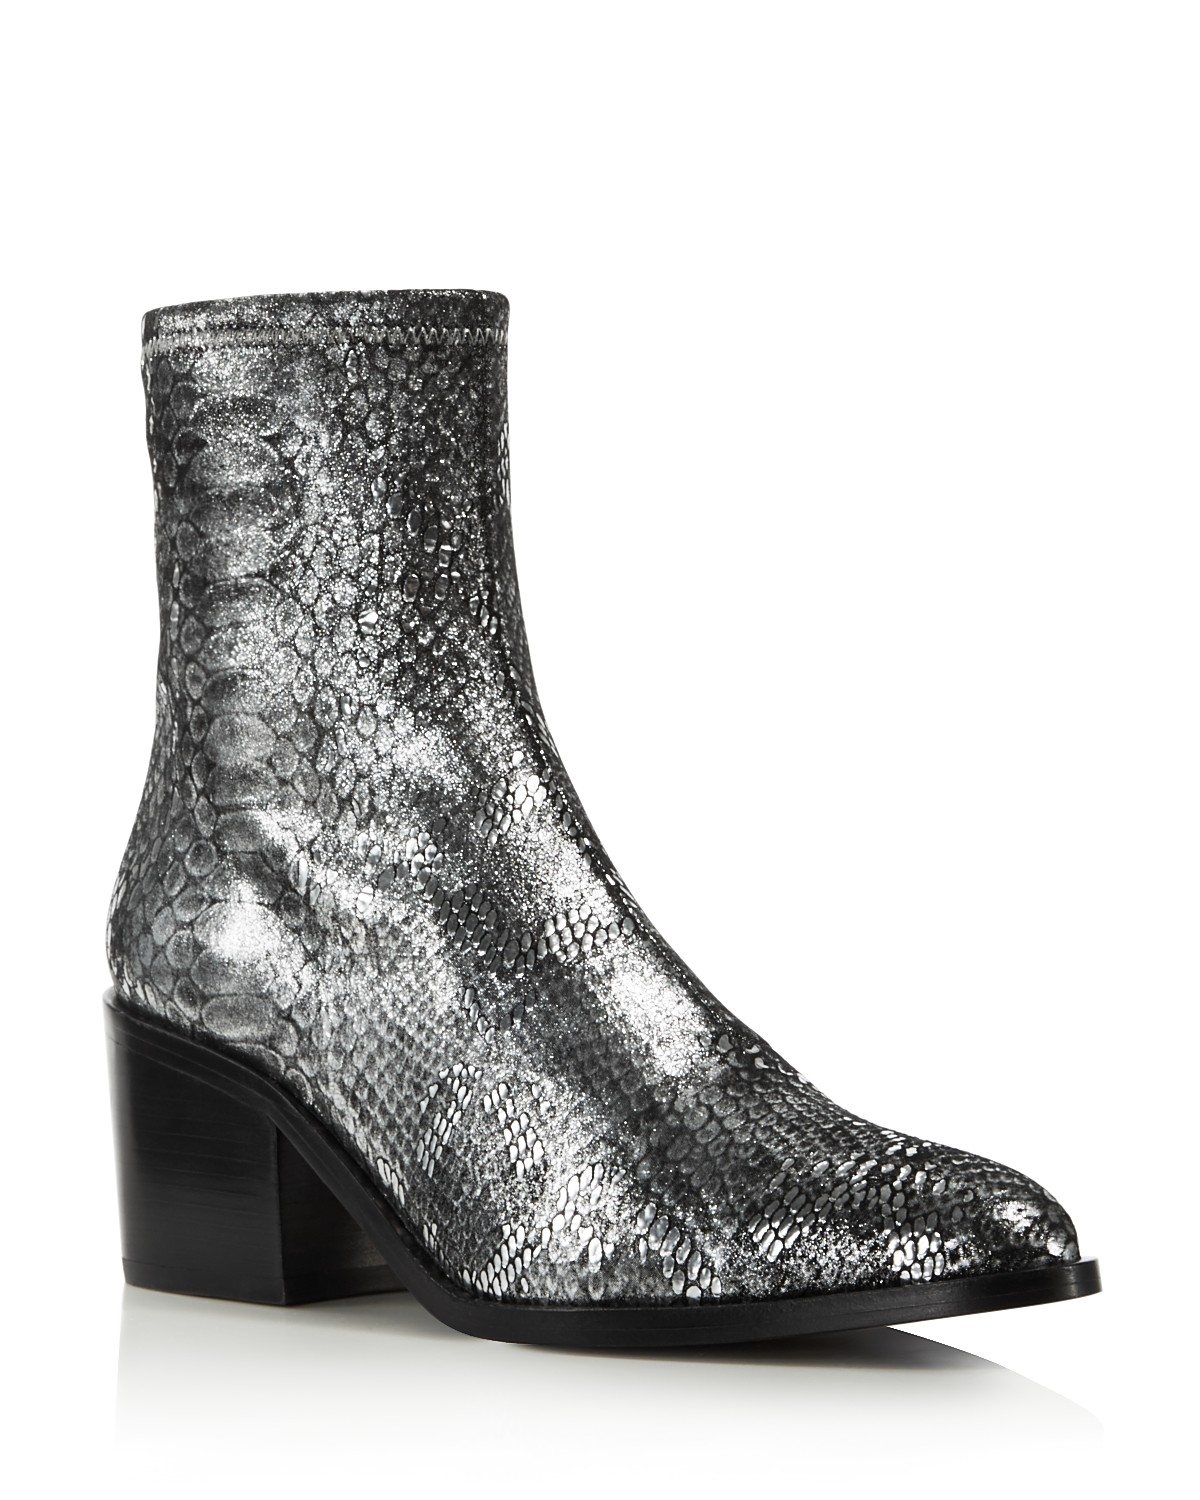 Opening Ceremony Women's Livv Metallic Snake-Embossed Leather Booties 47AXUBy